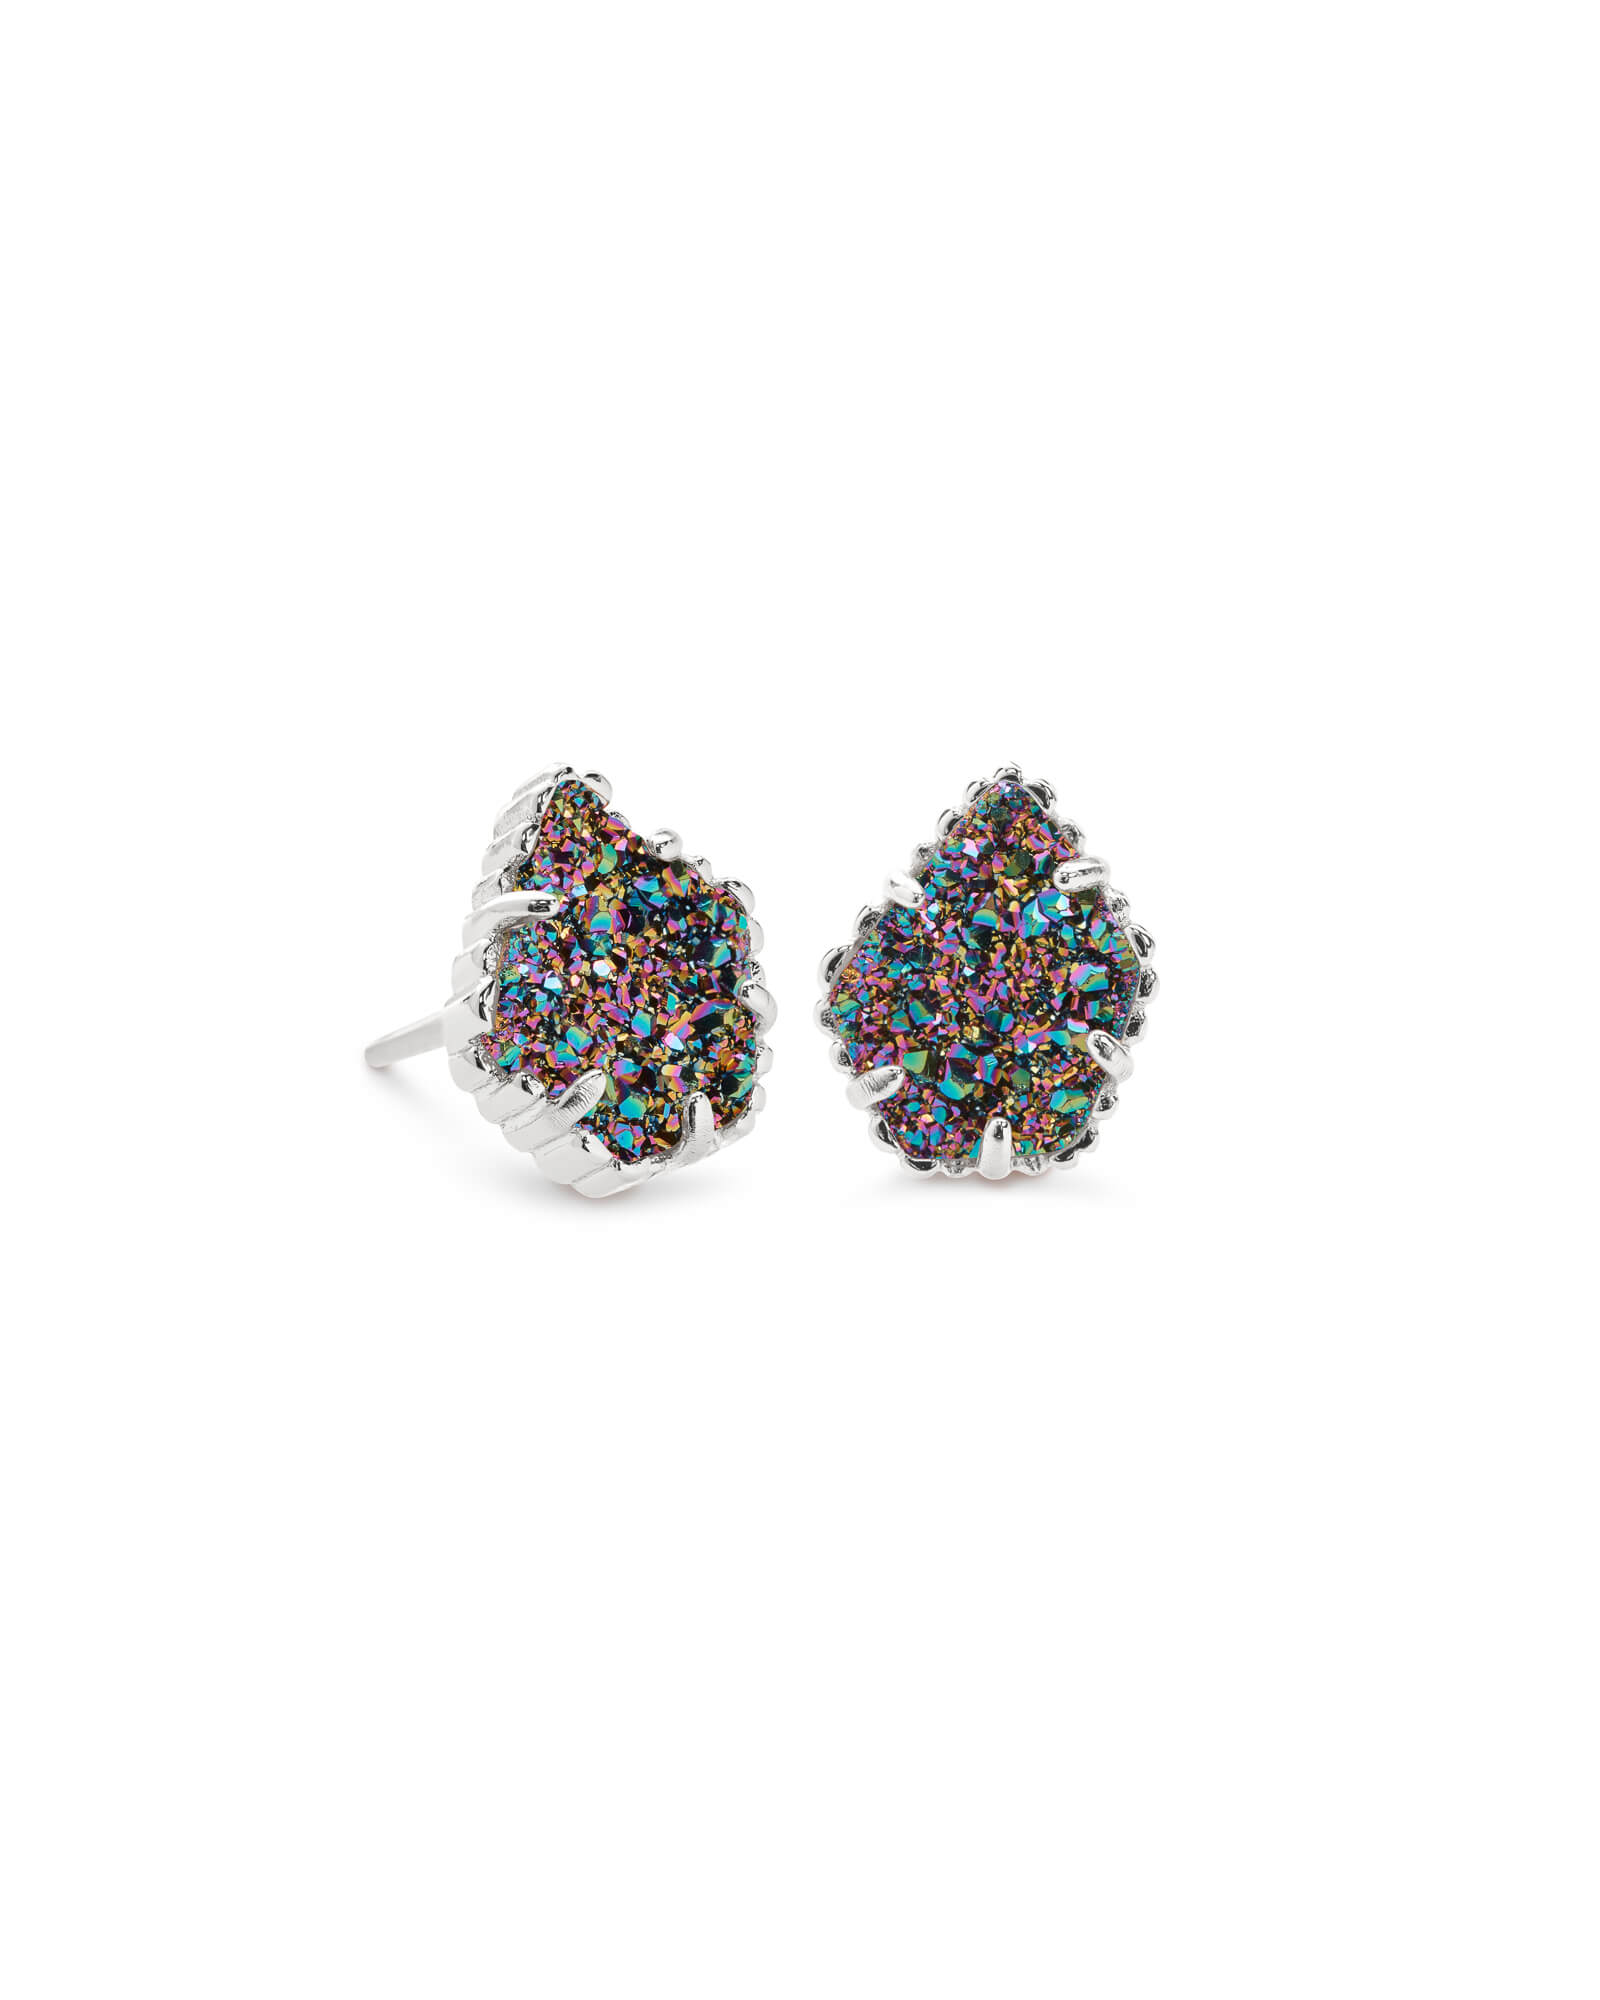 Tessa Silver Stud Earrings in Multicolor Drusy